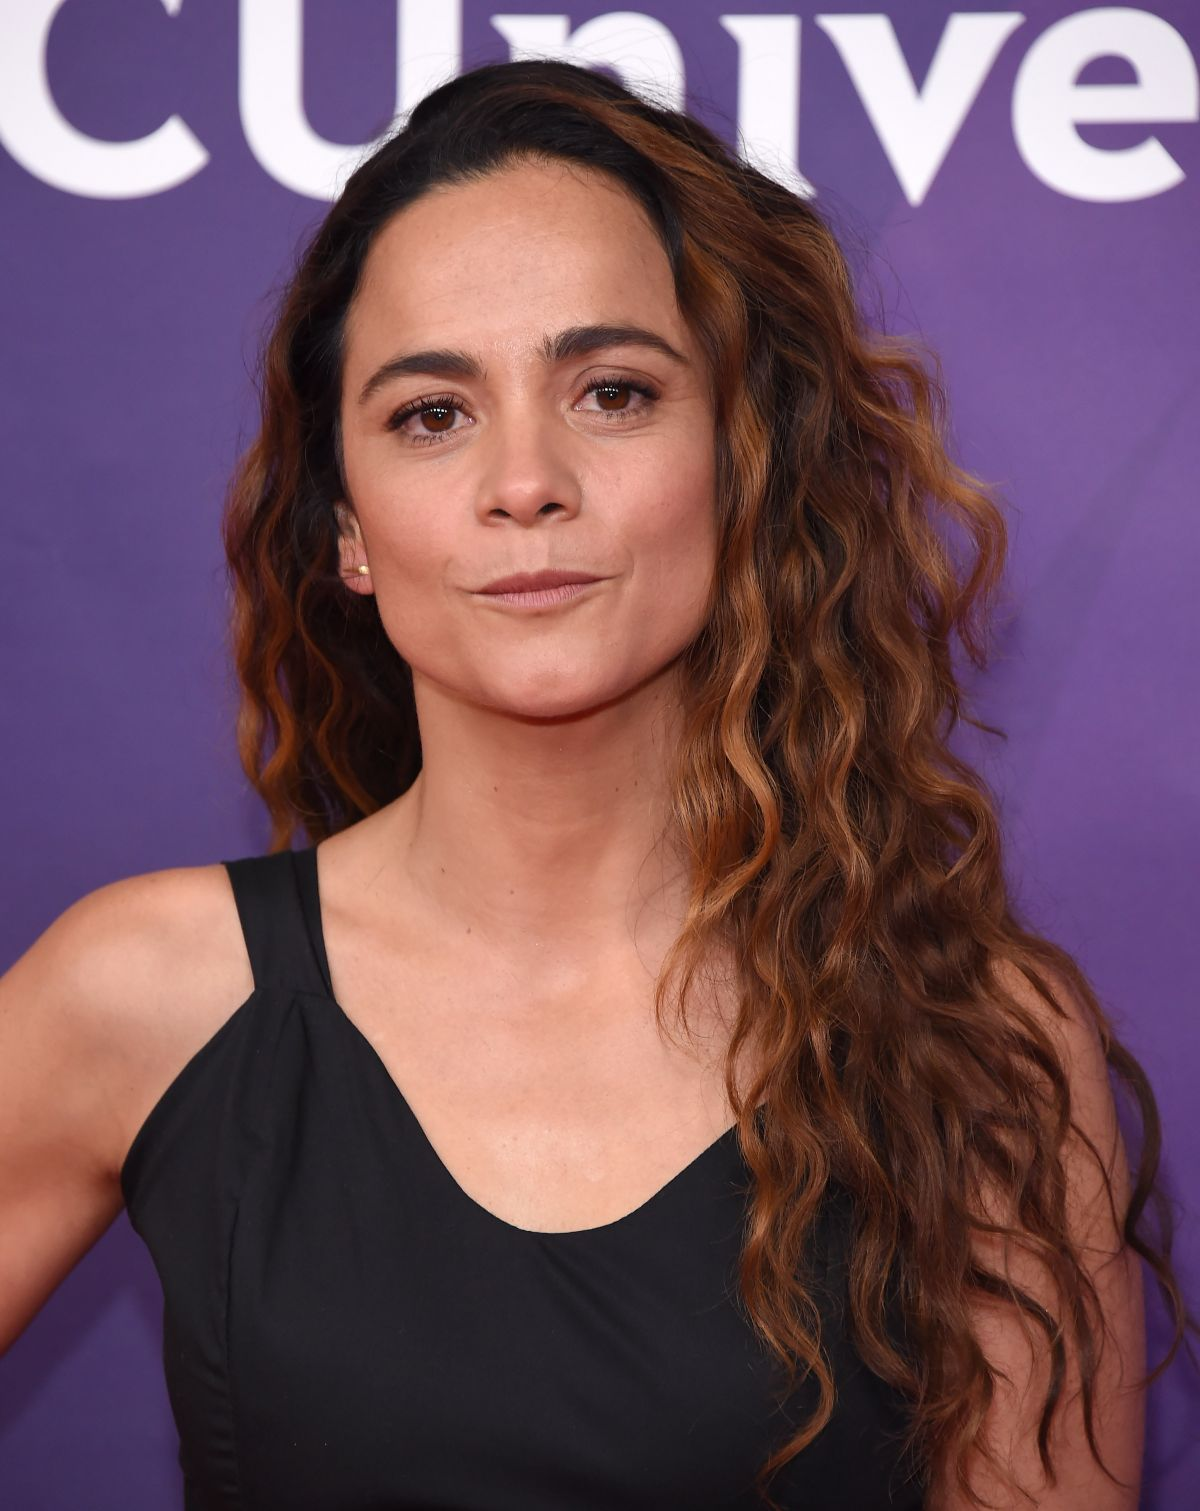 Fotos Alice Braga naked (57 photos), Topless, Is a cute, Feet, lingerie 2020